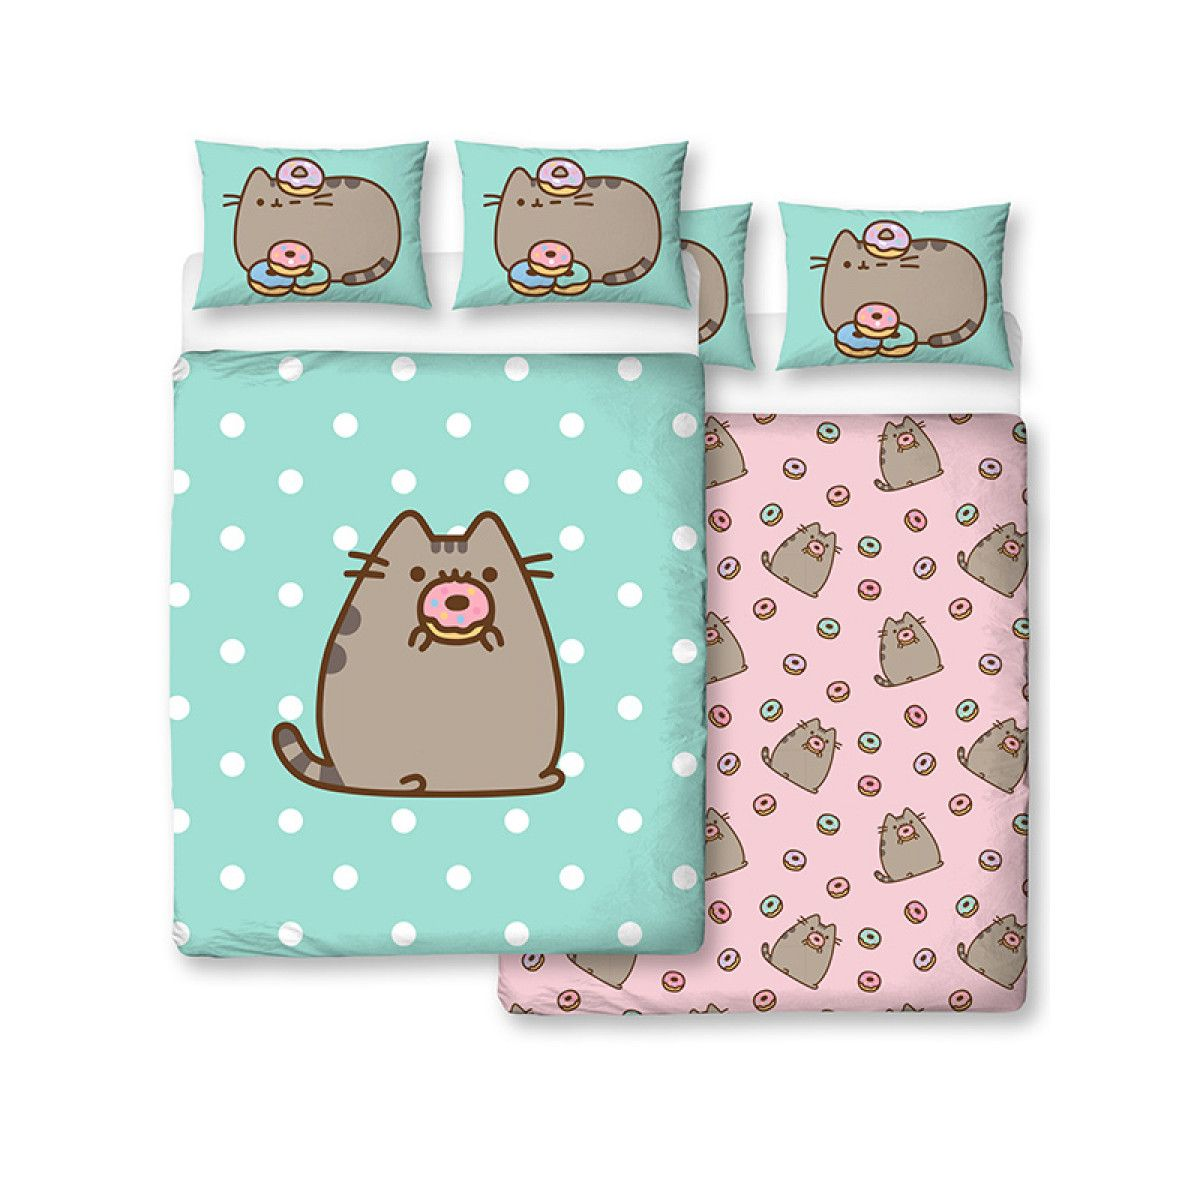 Pusheen Doughnut Double Duvet Cover and Pillowcase Set